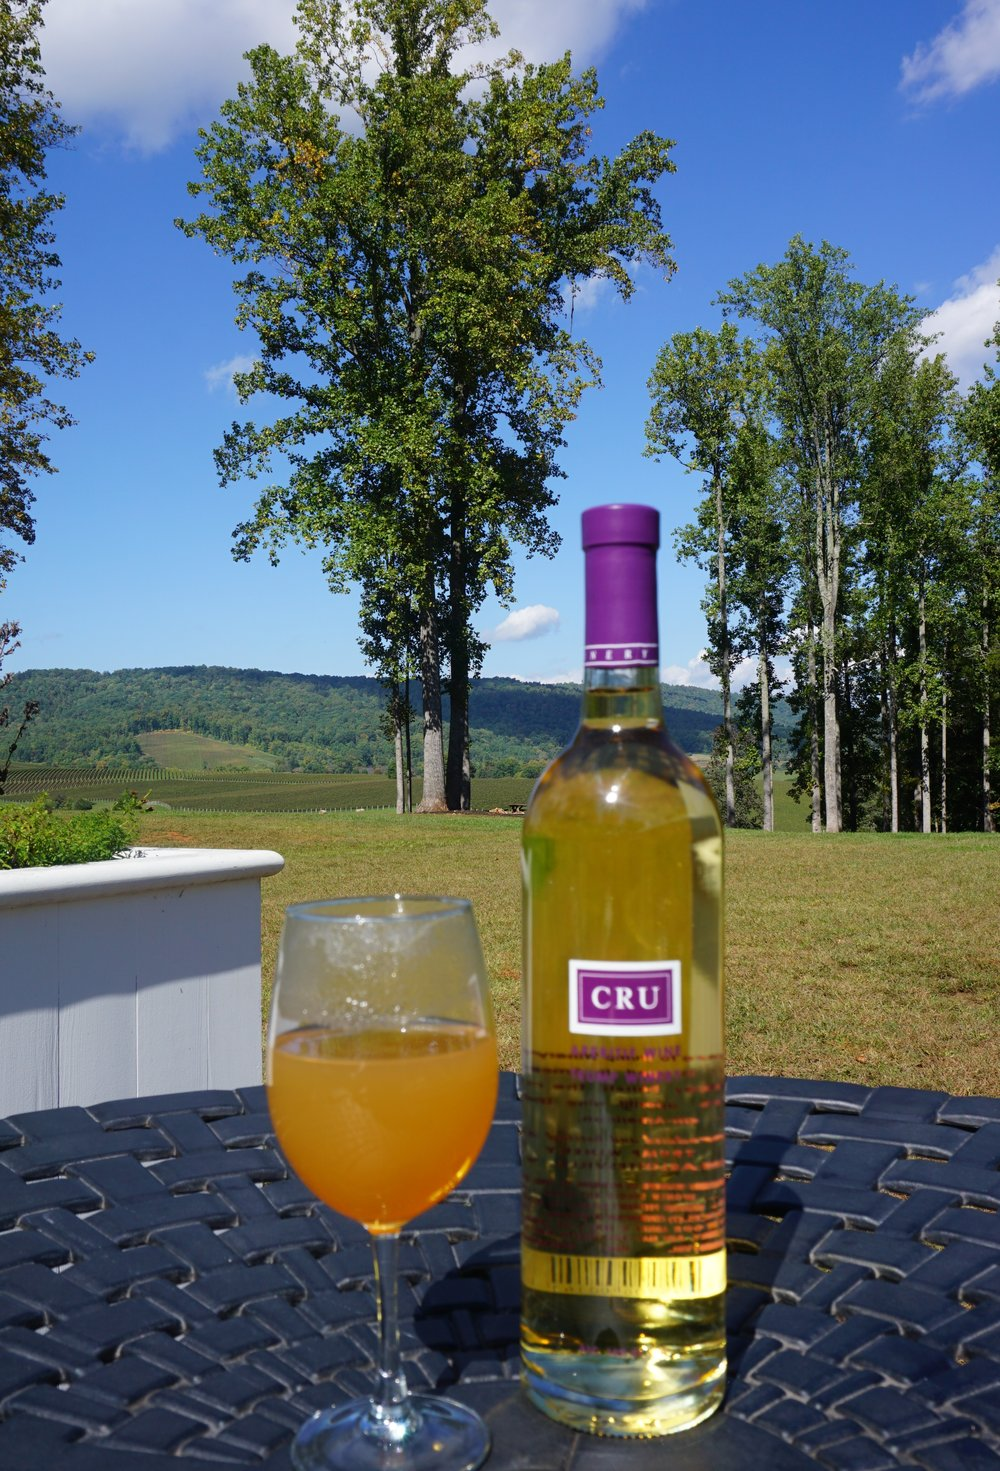 Trump Winery specializes in sparklings but it was the Cru—a chardonnay fortified with brandy and aged in American bourbon barrels—that I sipped on under a stand of evergreens soaking in the breathtaking Virginia view.